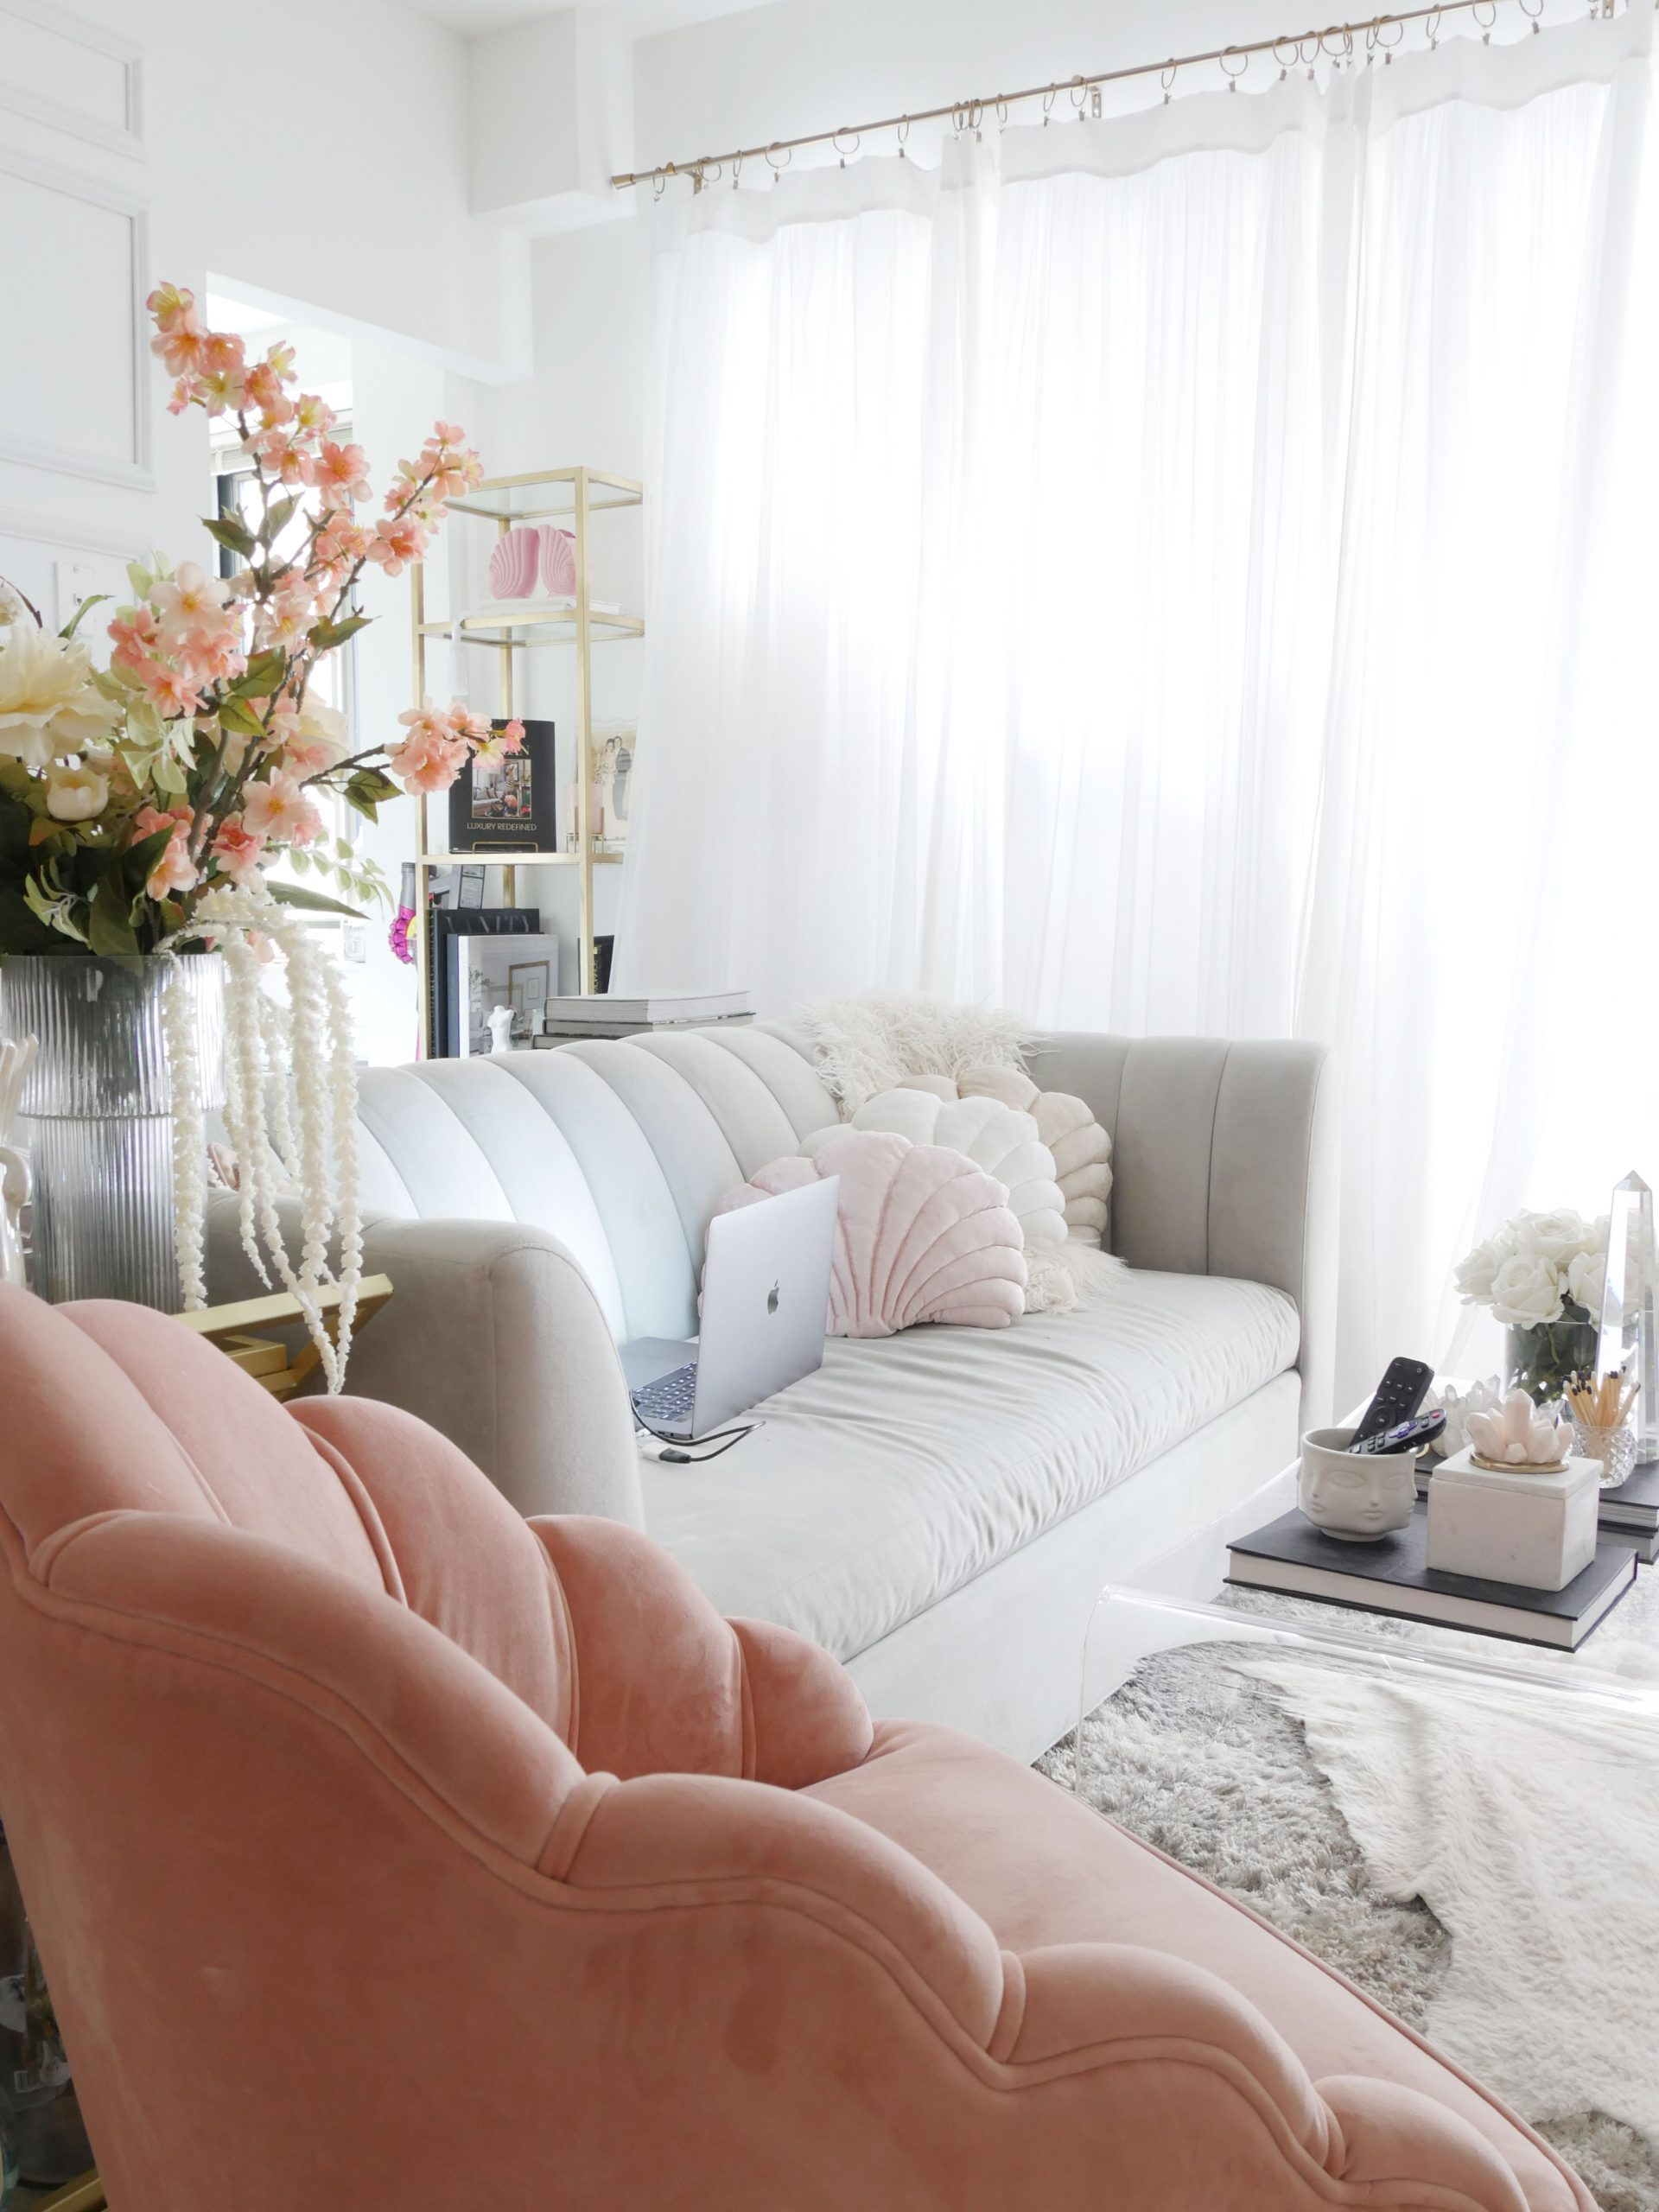 How To Design A Spacious Living Room In A Tiny Apartment City Chic Decor